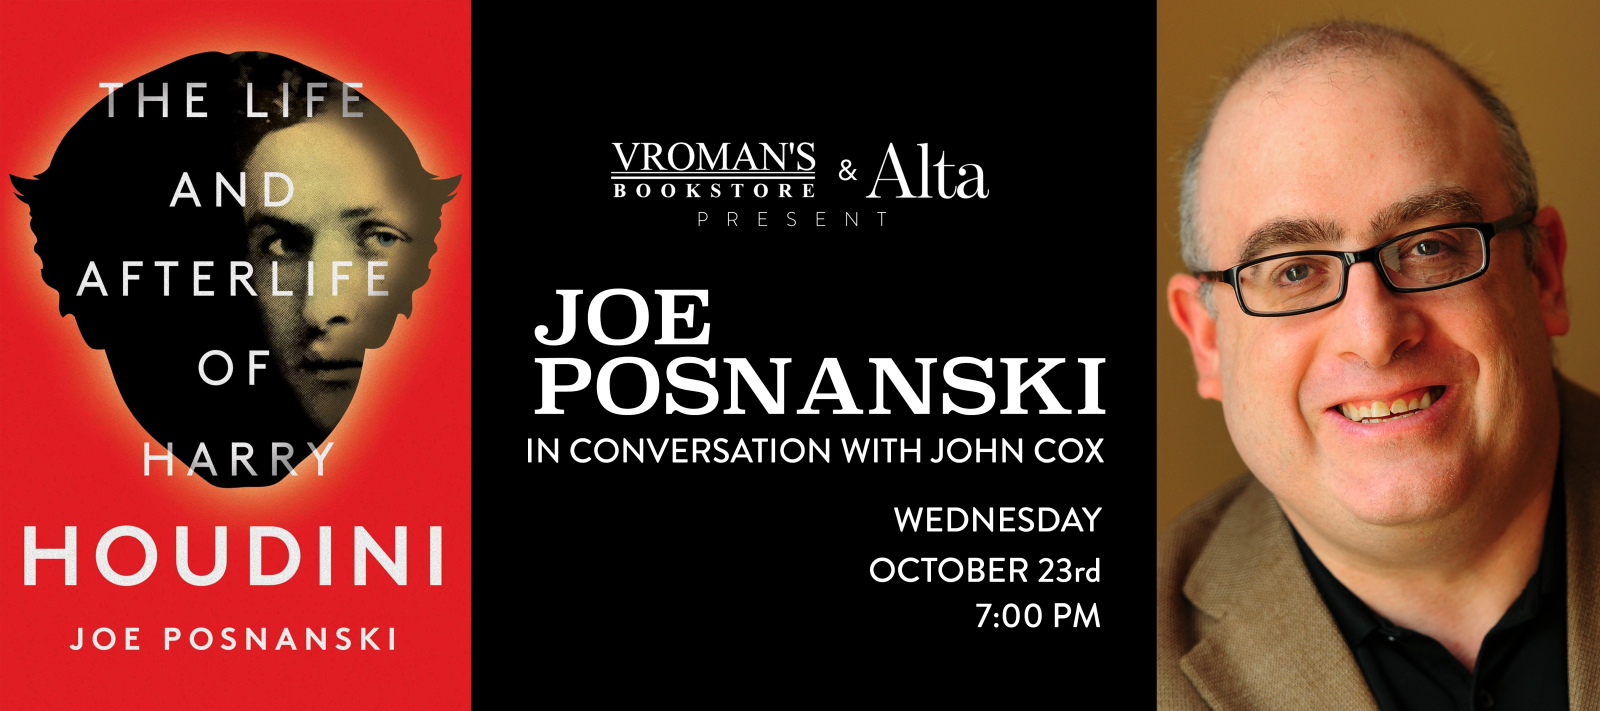 book signing with Joe Posnanski Wednesday October 23 at 7pm